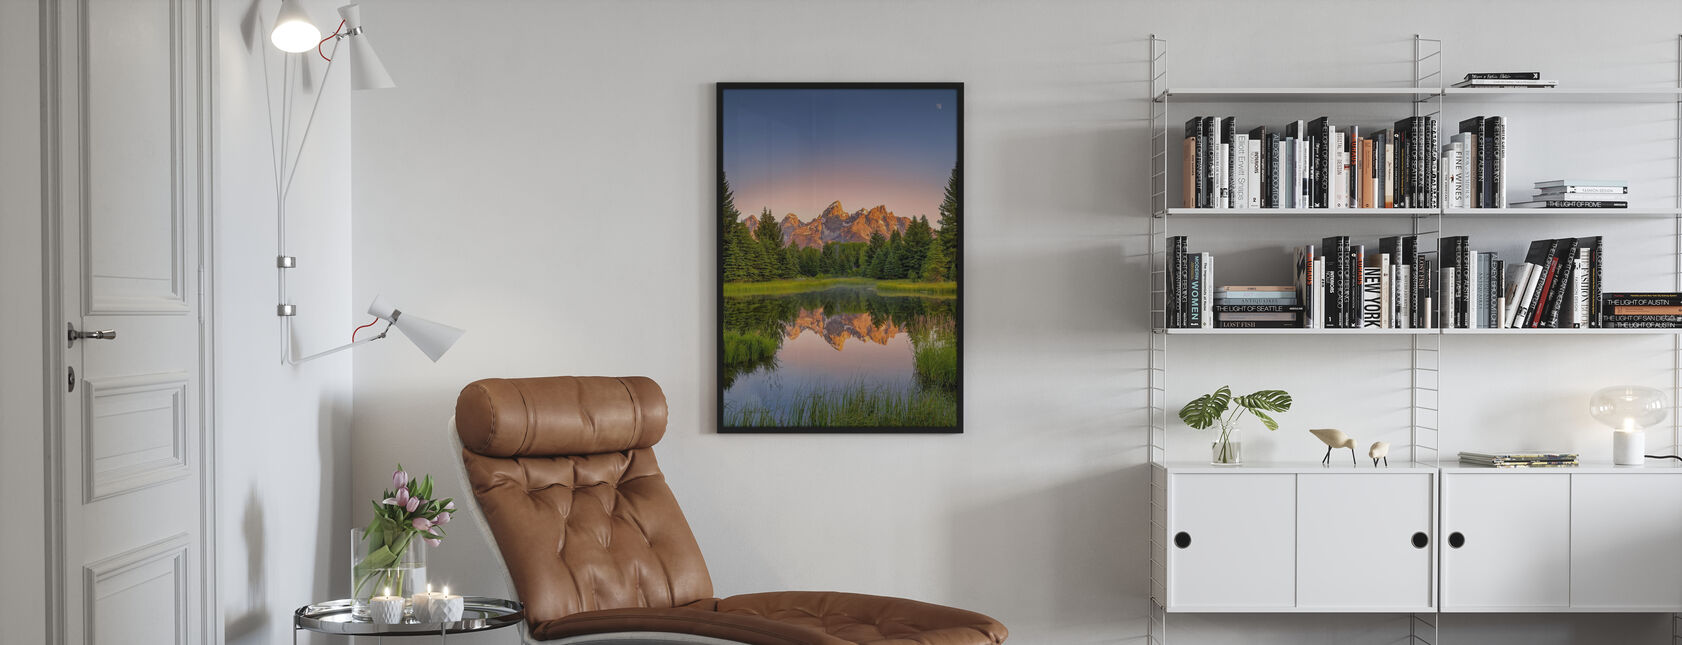 Dawn at Schwabacher's Landing - Poster - Living Room